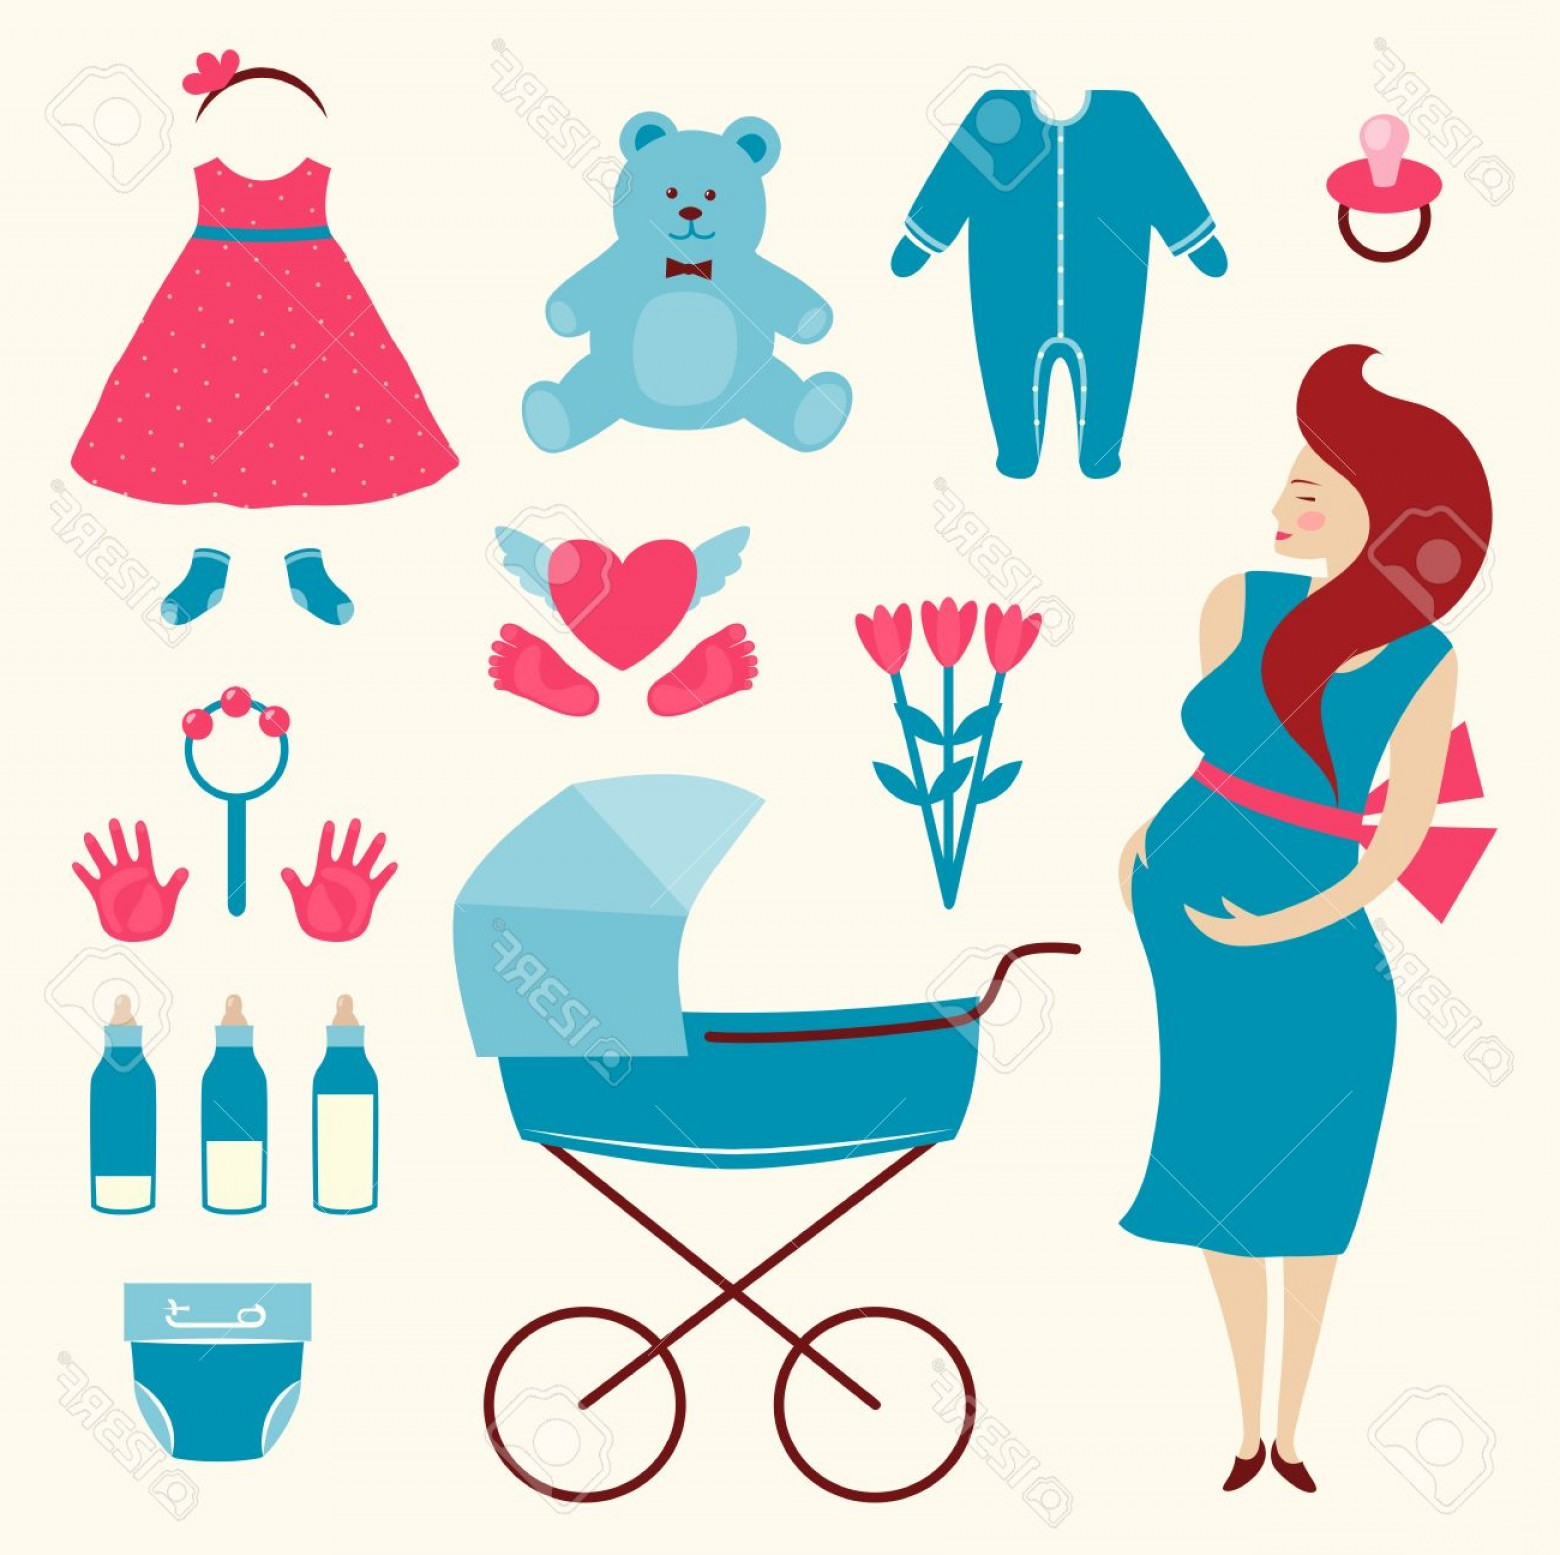 Pregnant Vector Art: Photostock Vector Pregnant Young Woman And Baby Clothes Flat Simple Illustration Of Pregnant Woman